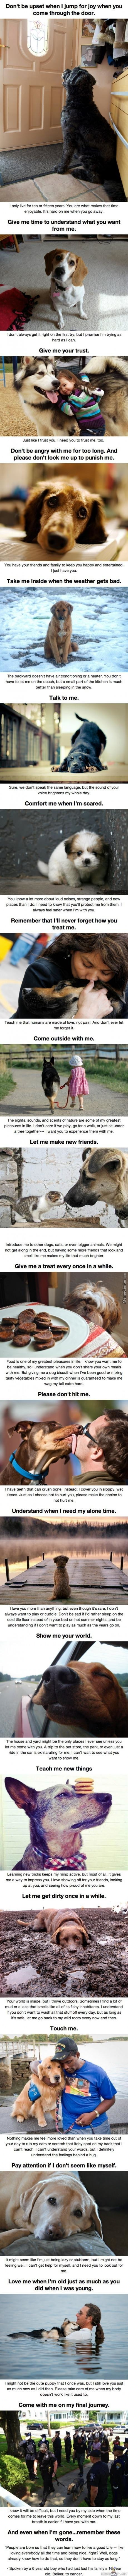 20 Things To Dog Owners